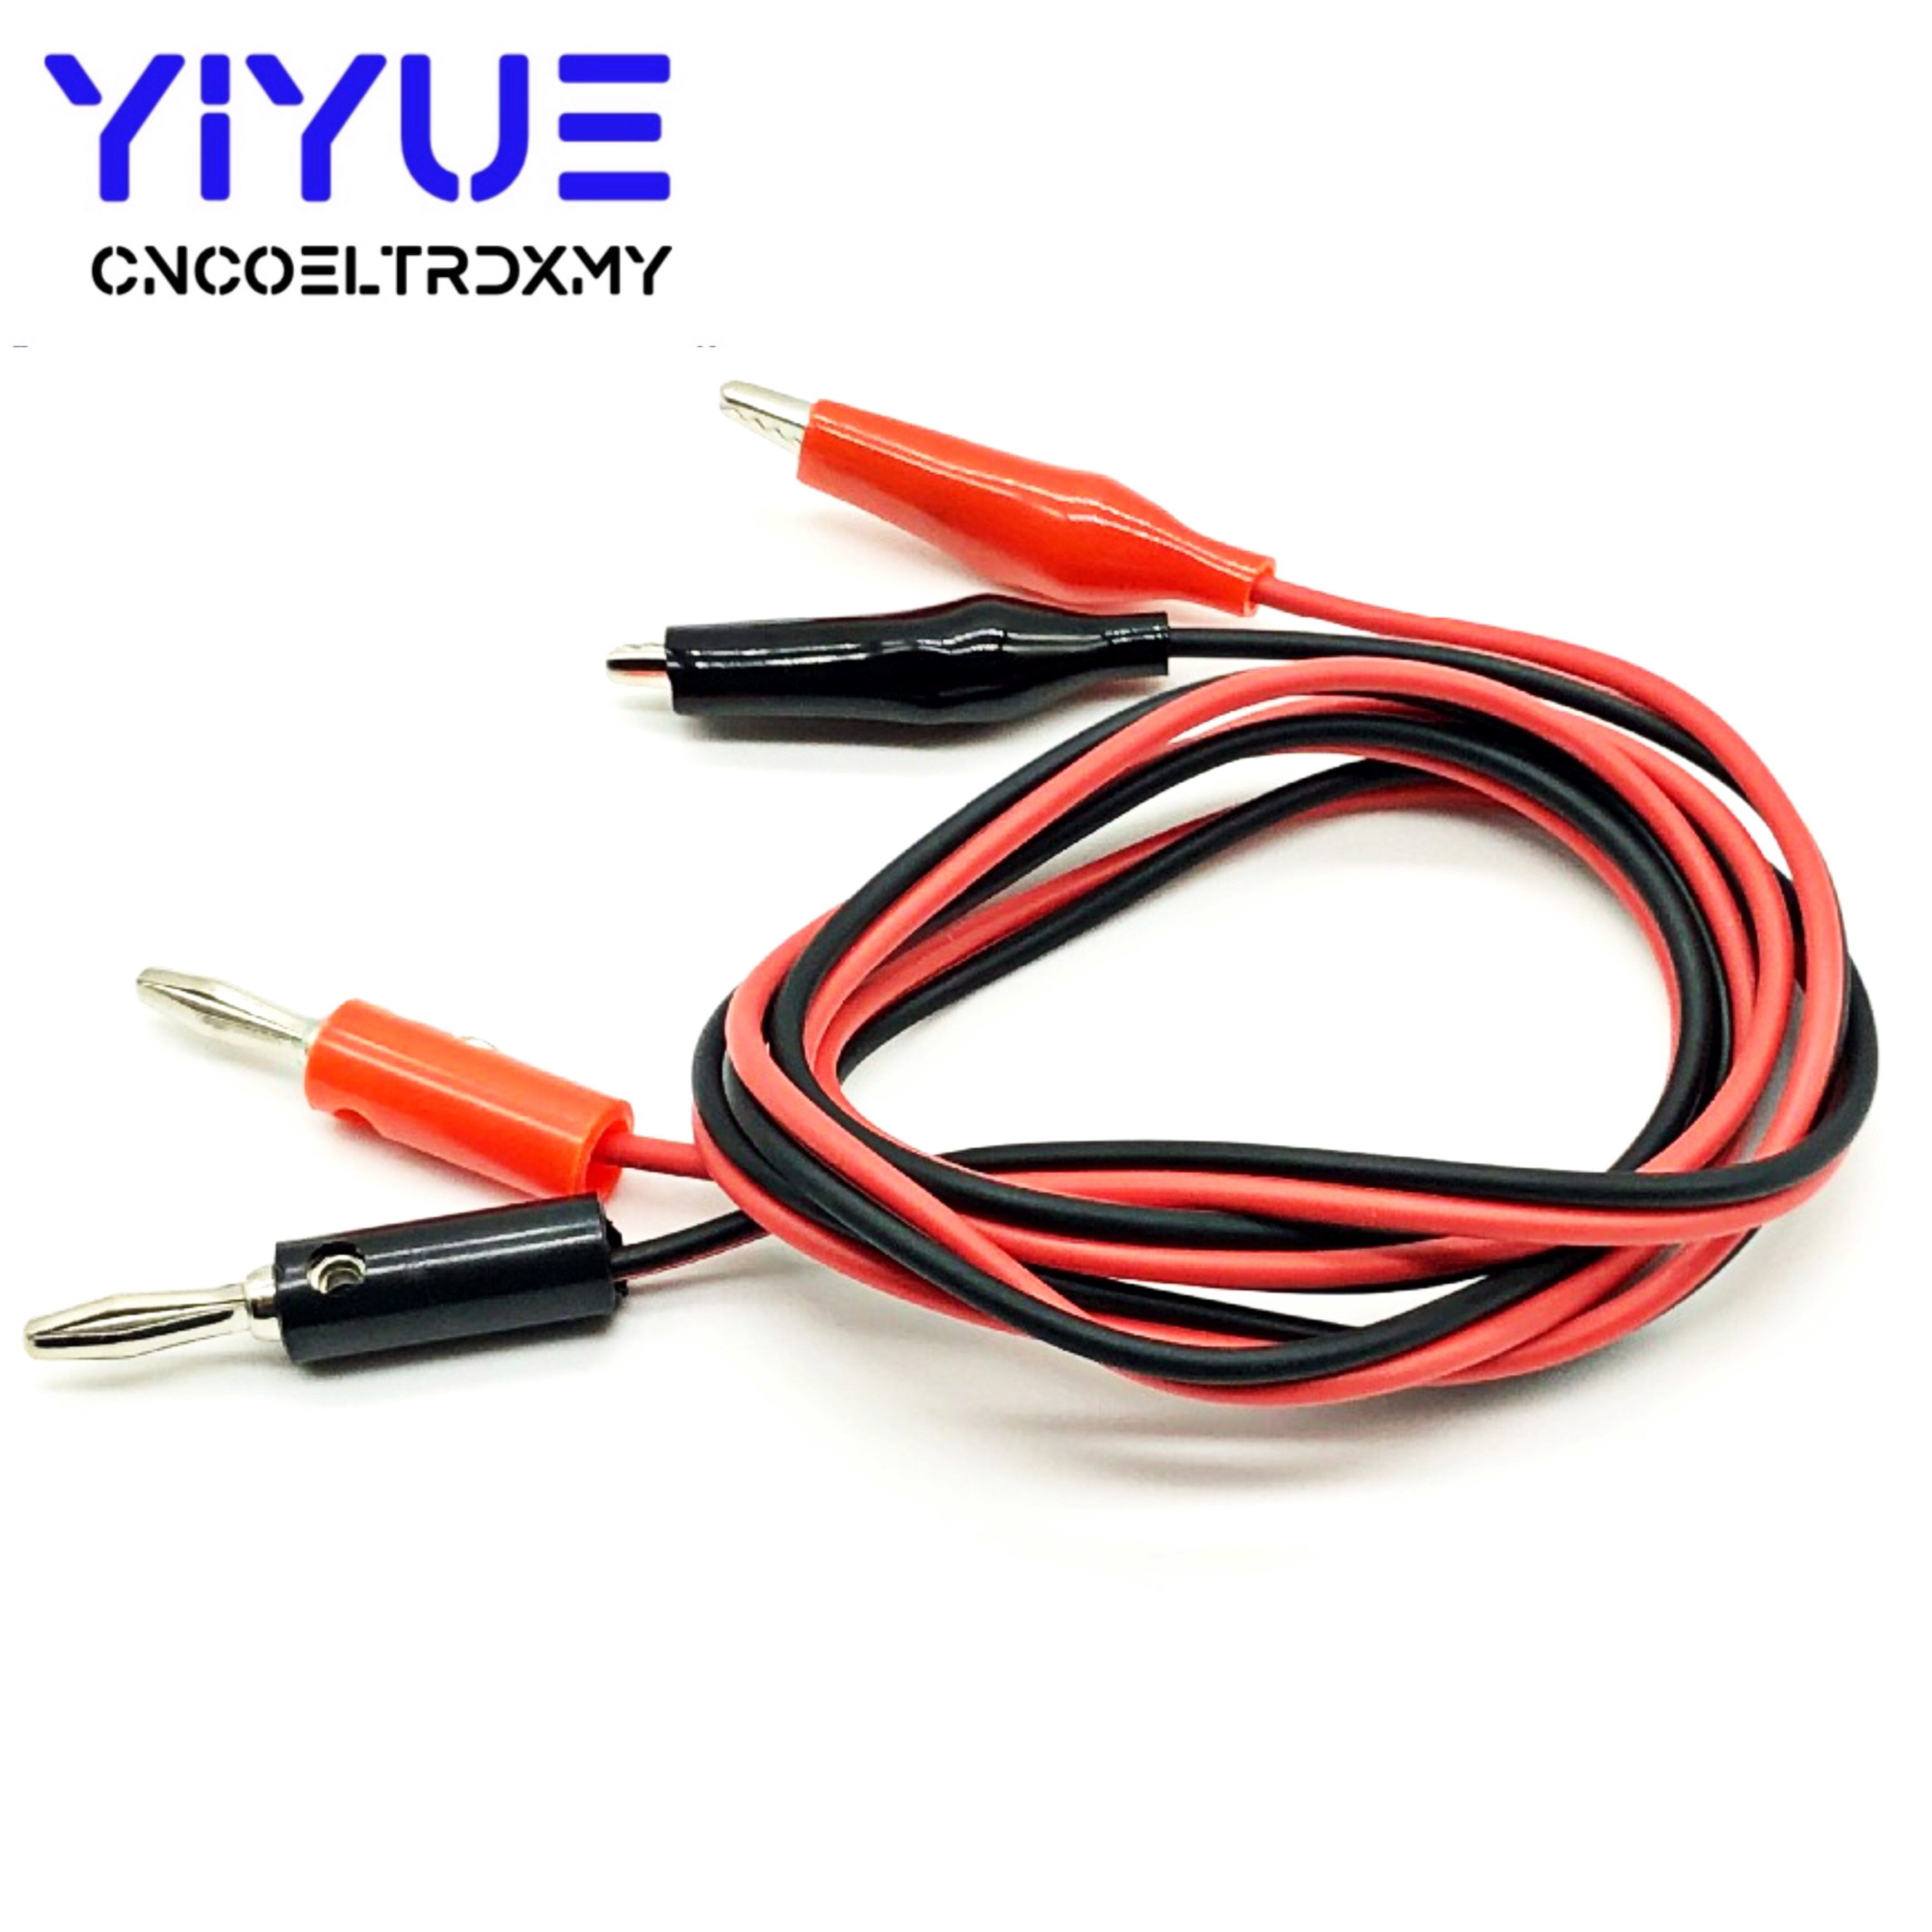 1 Pair Alligator Test Lead Clip To AV Banana Plug Connector TO Dual Tester Alligator Clip Probe Cable 1M Red+Black